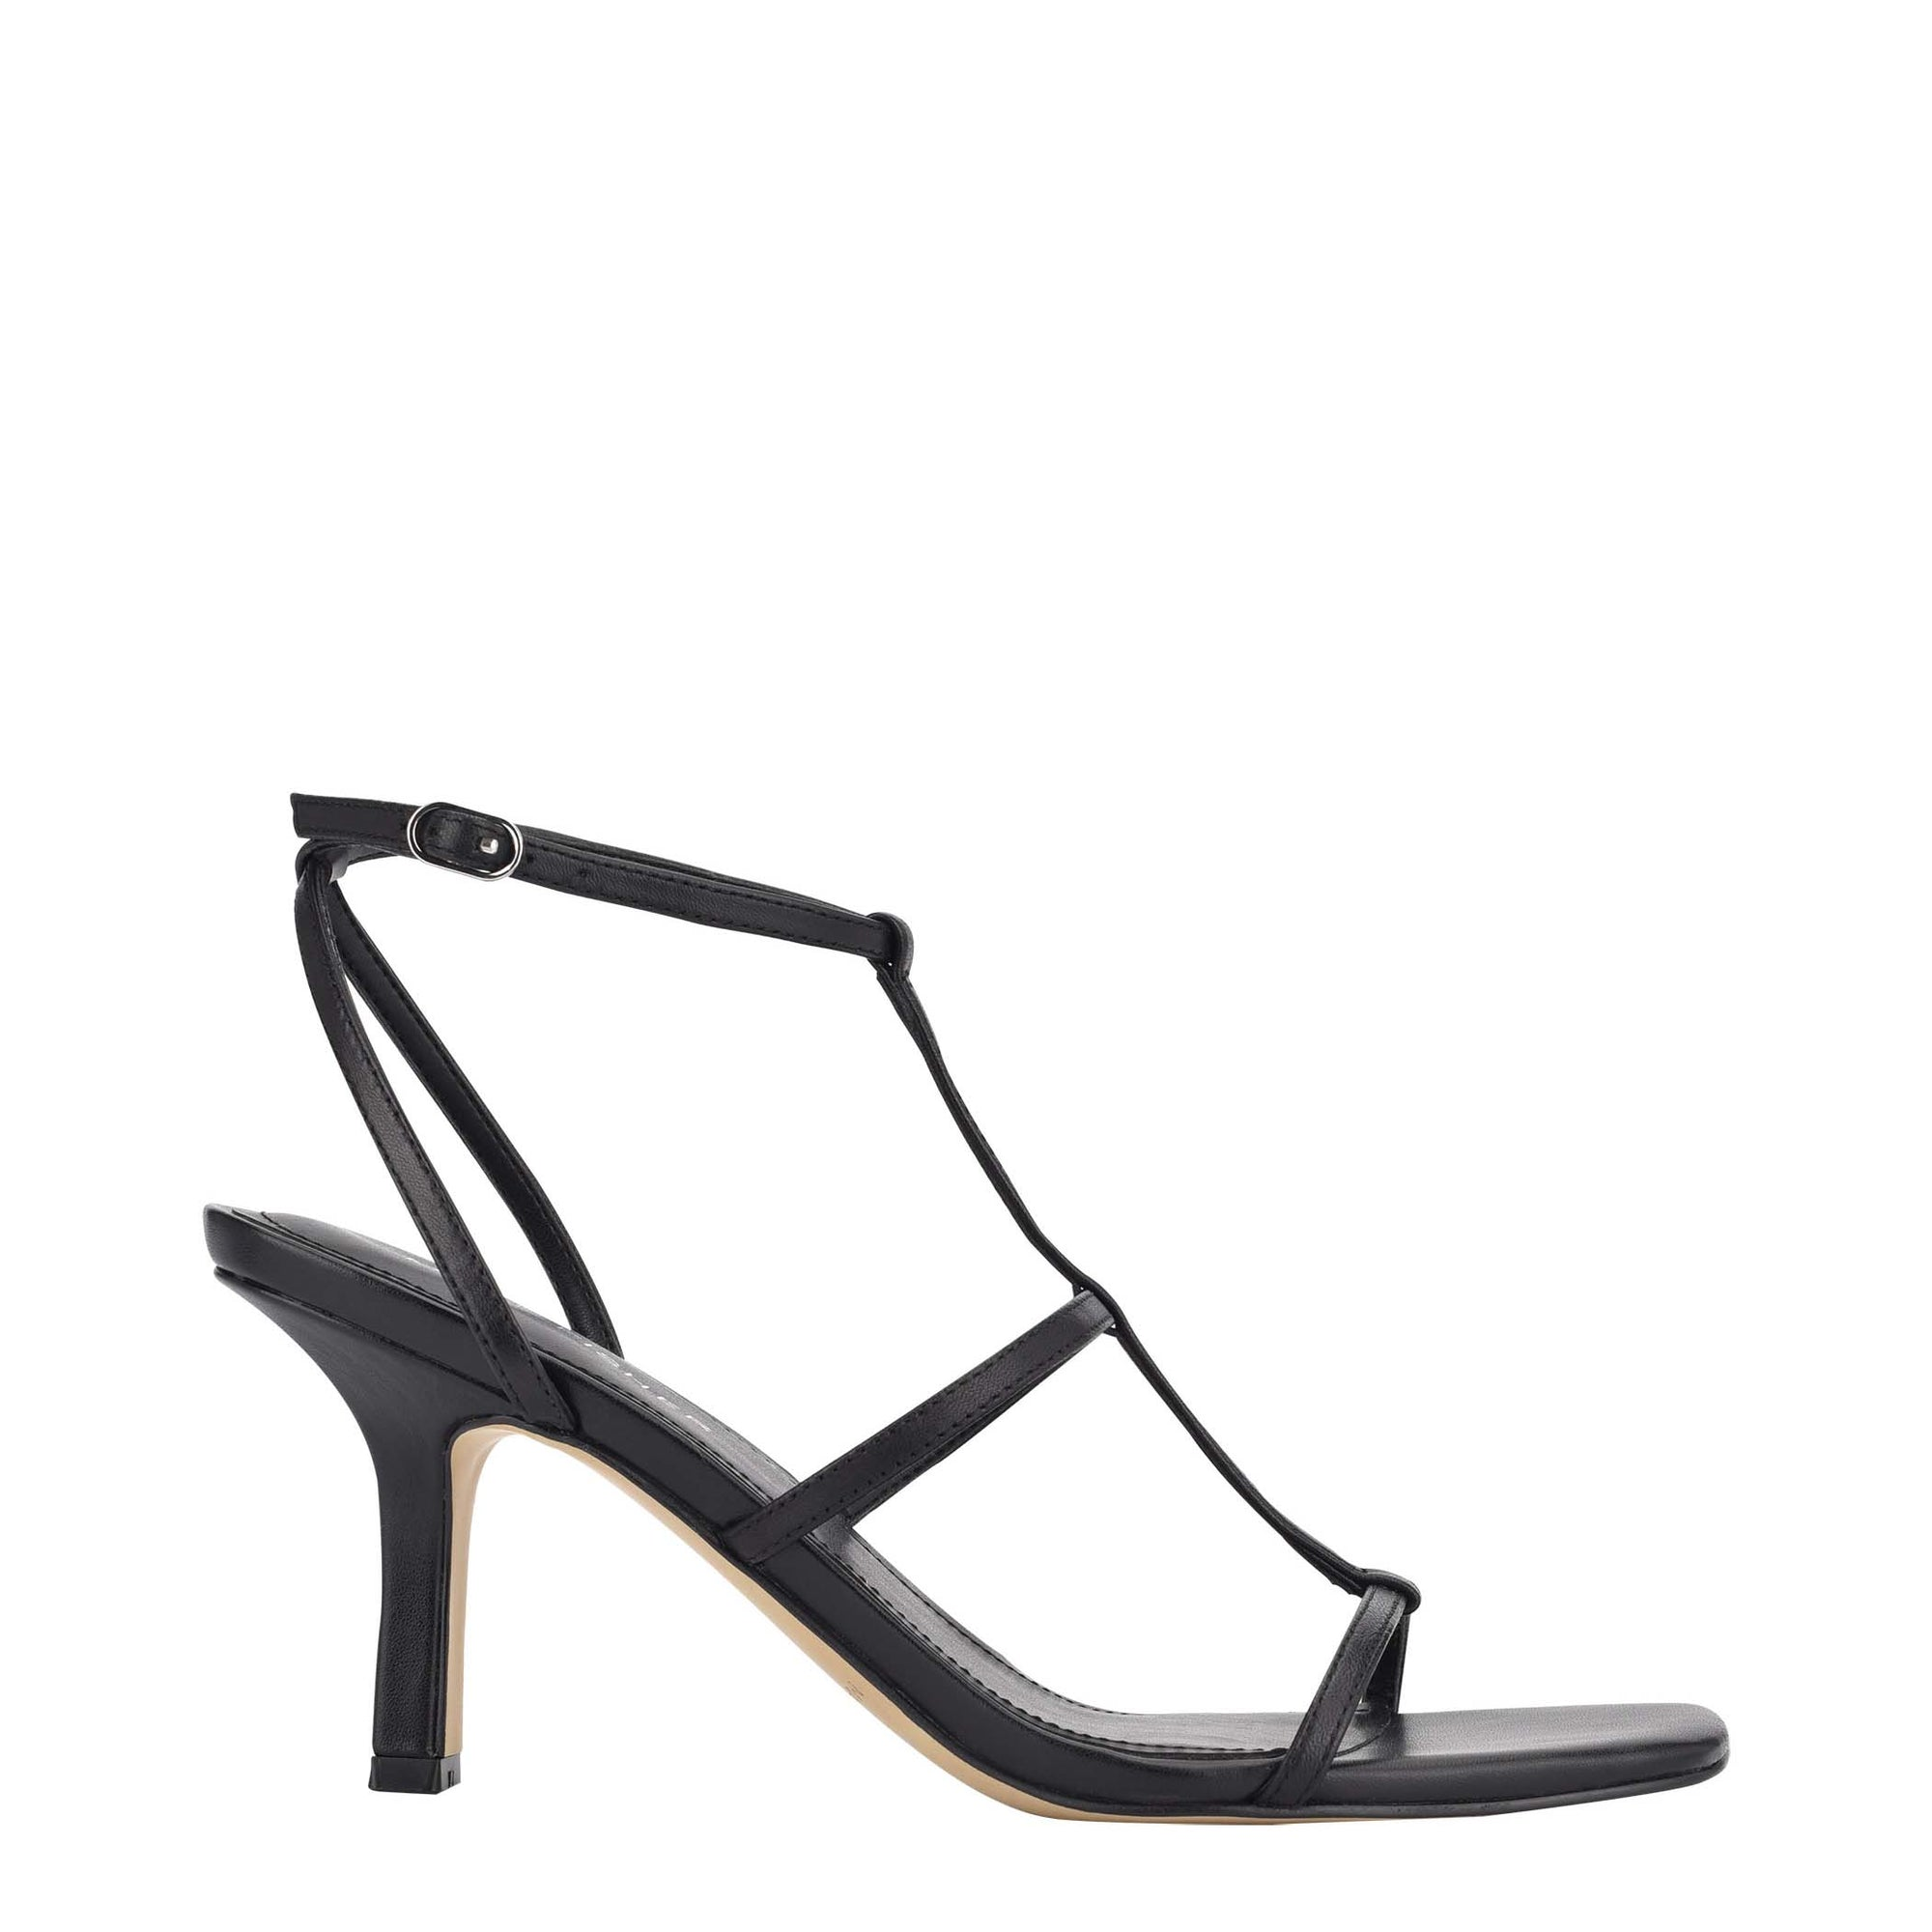 qulsa-heeled-sandal-in-black-leather